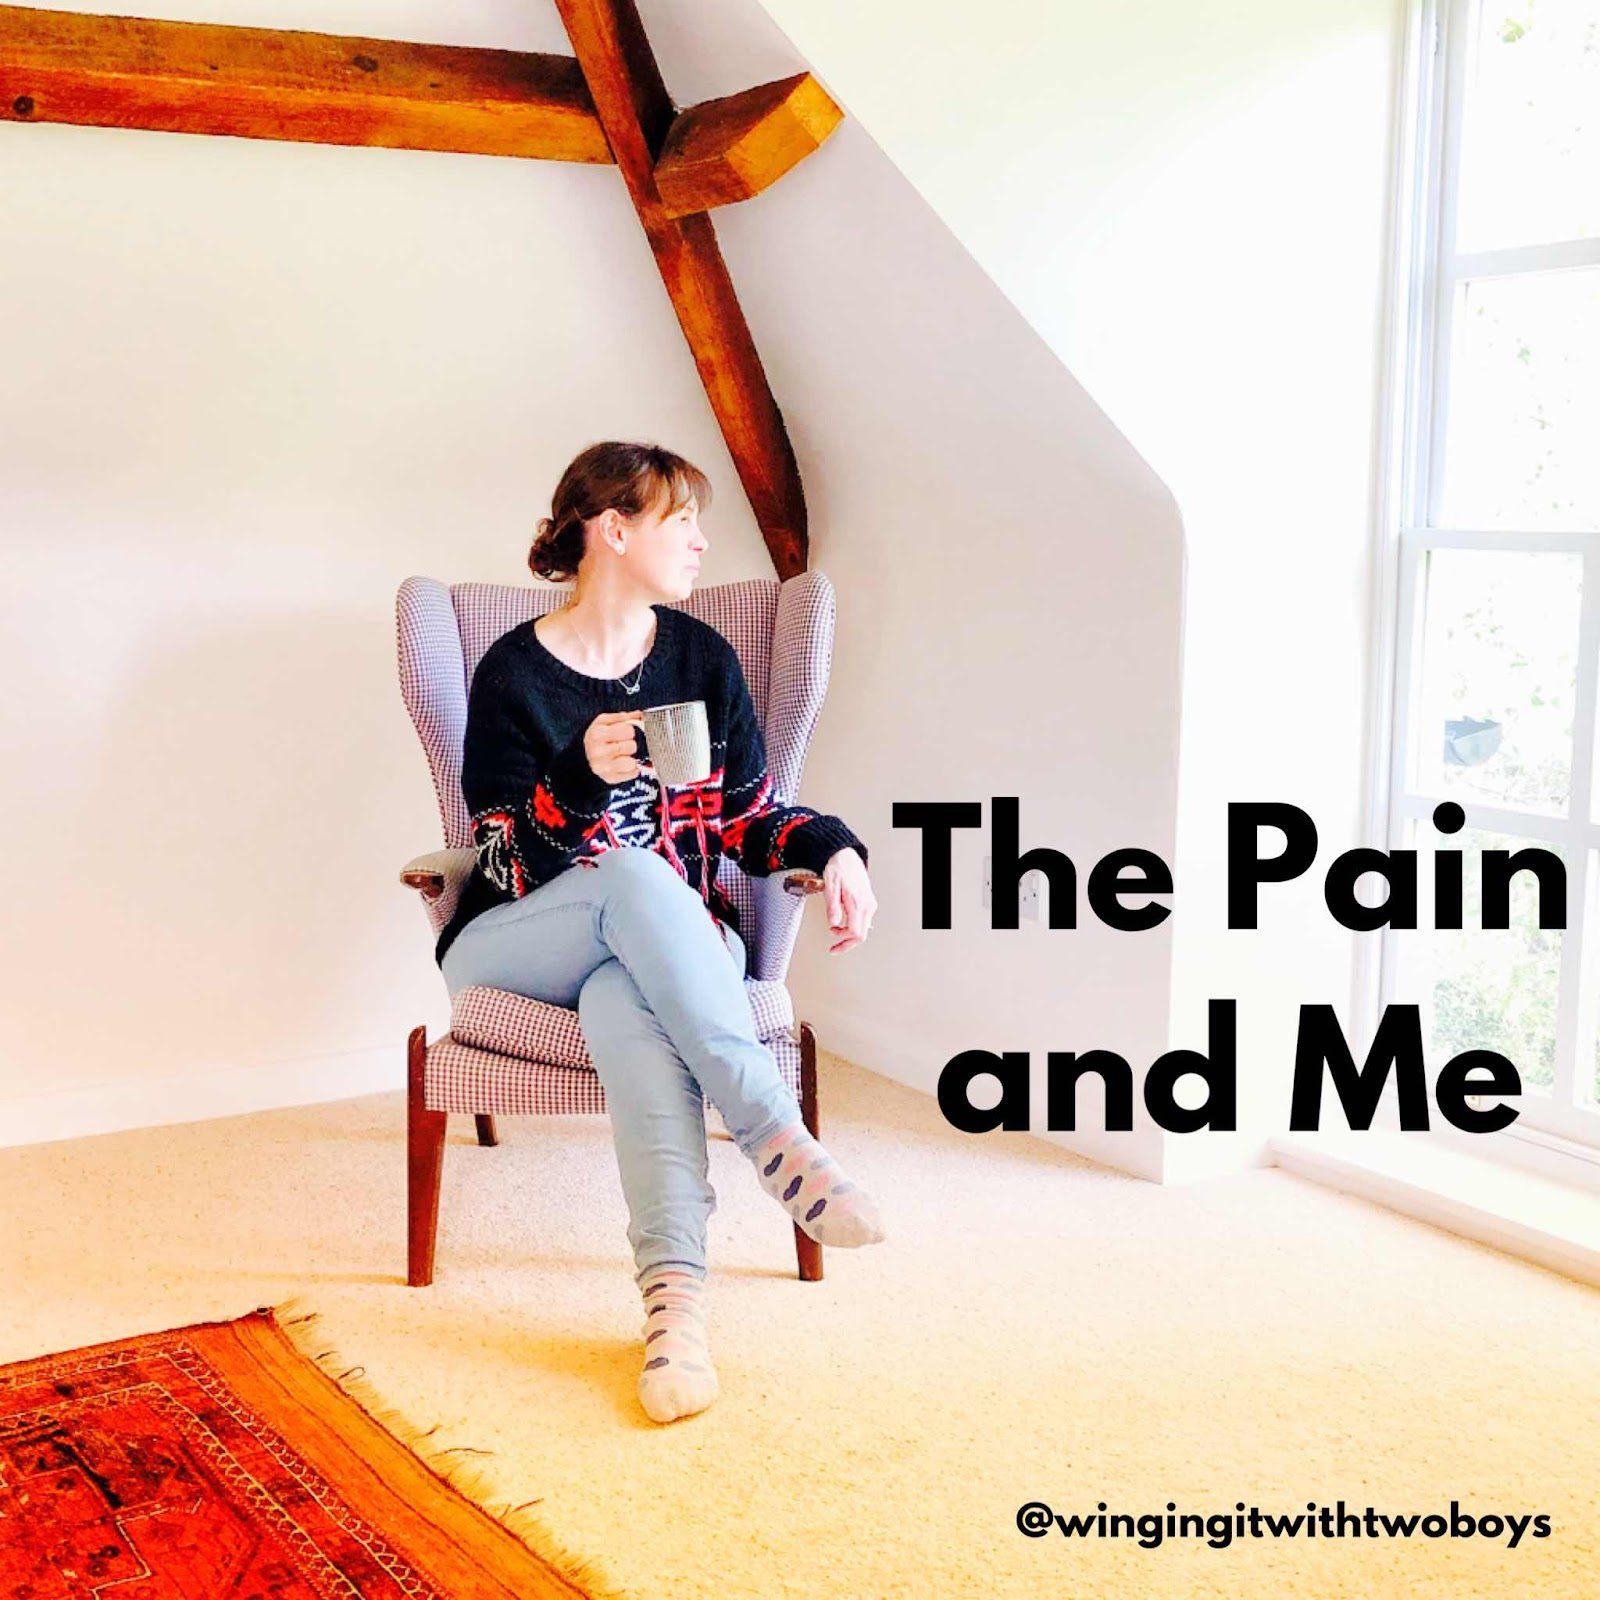 The Pain and Me